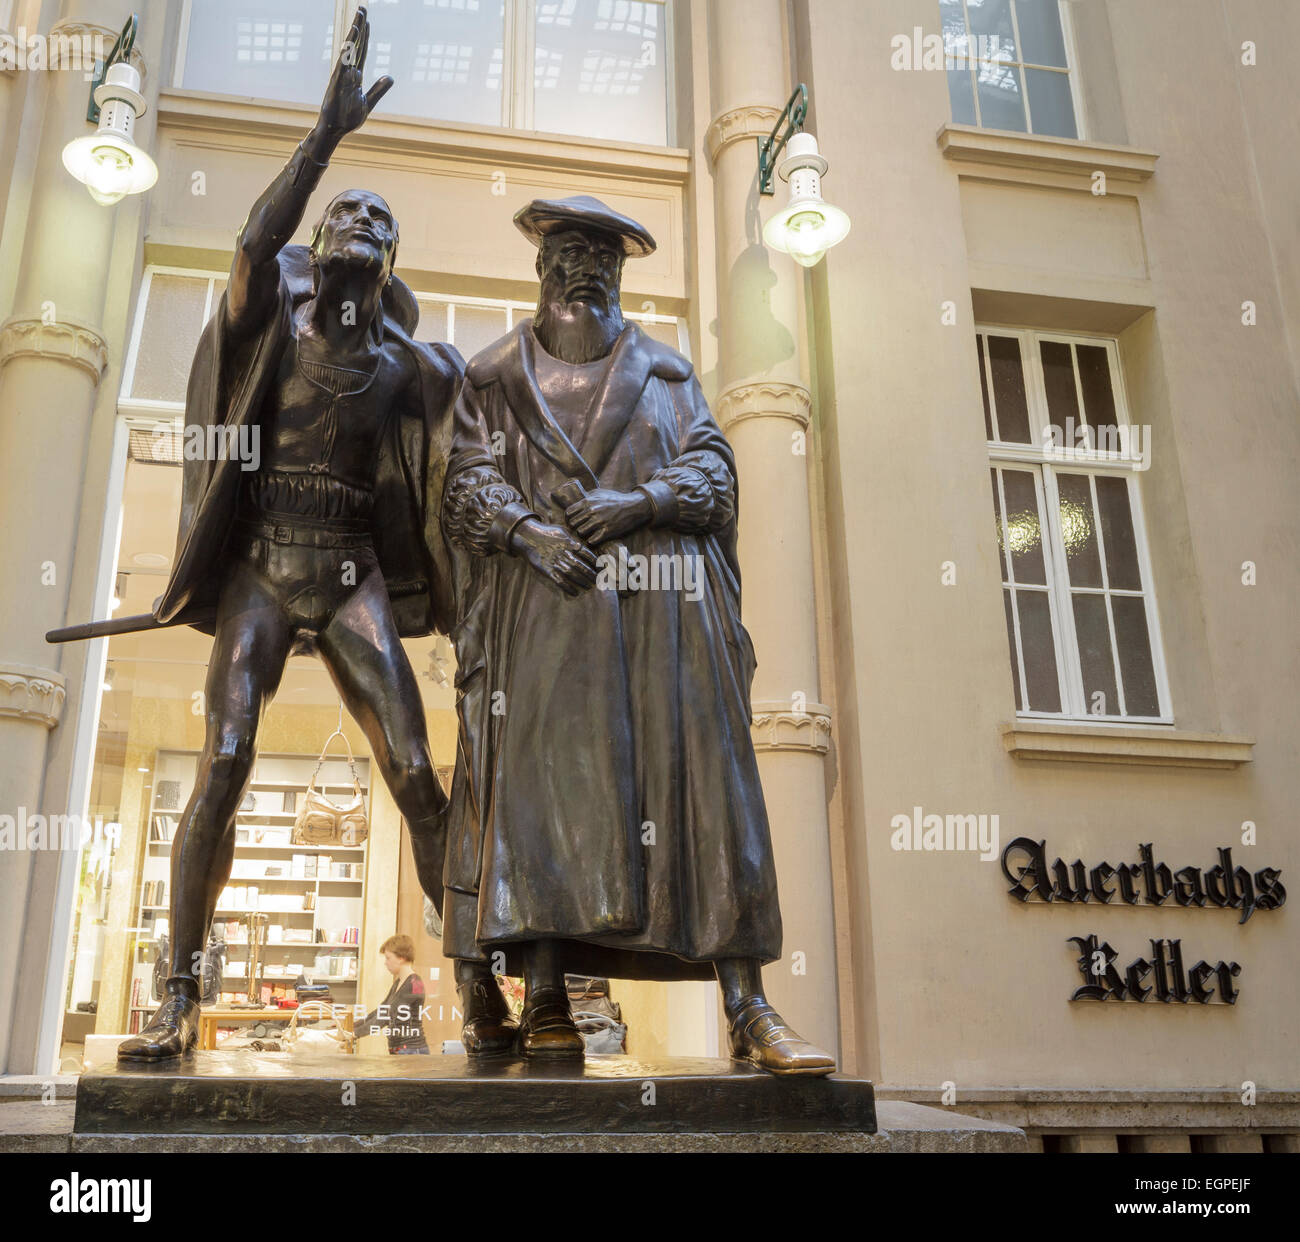 Auerbachs Keller, Statue of Mephisto and Faust, Leipzig, Saxony, Germany - Stock Image